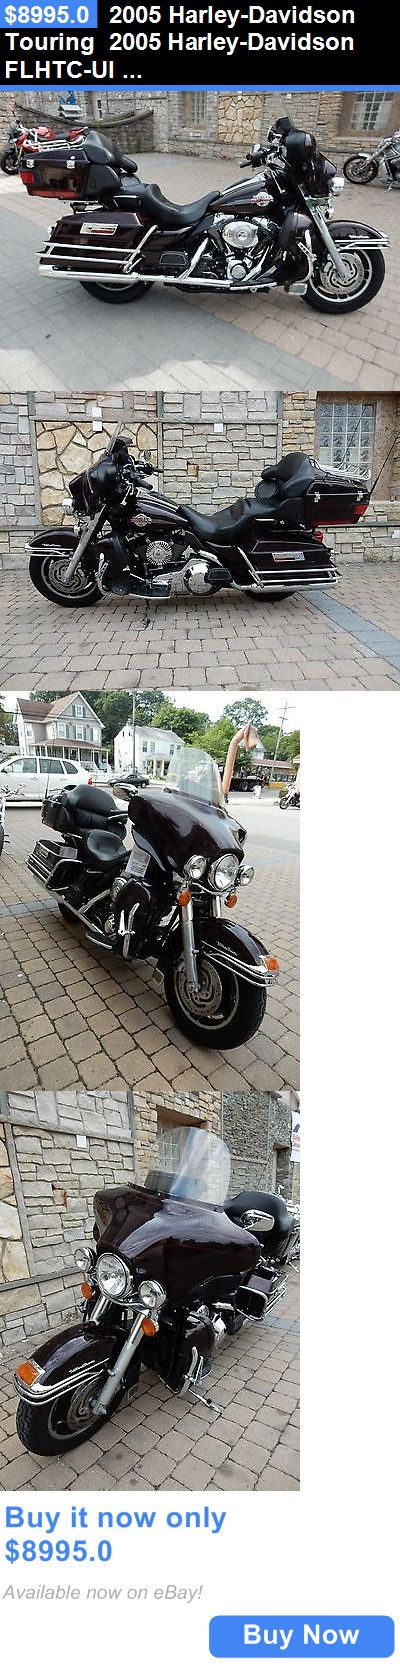 Motorcycles: 2005 Harley-Davidson Touring 2005 Harley-Davidson Flhtc-Ui Ultra Classic Electra Glide BUY IT NOW ONLY: $8995.0